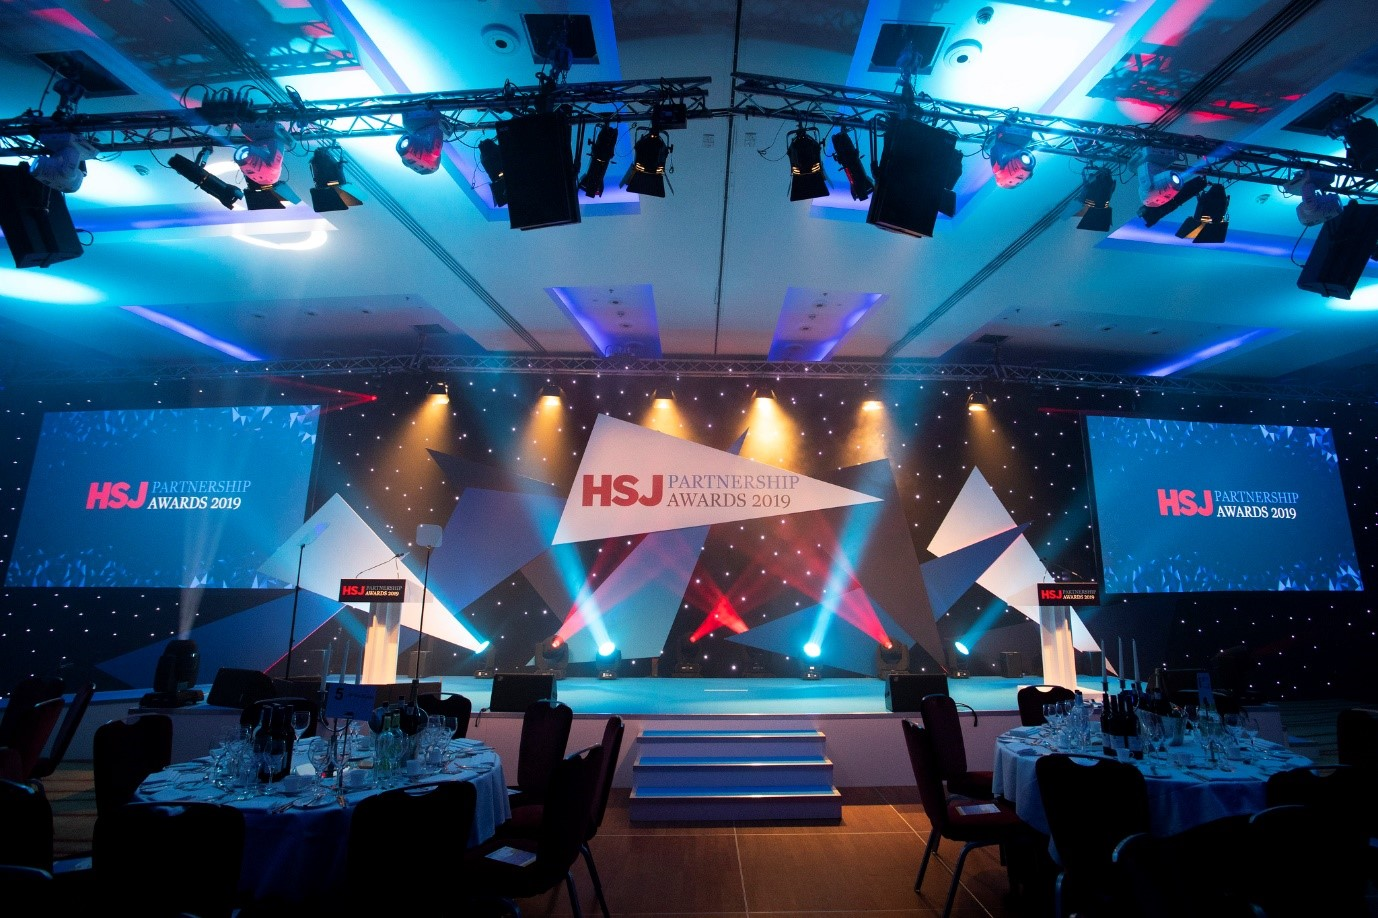 HSJ Partnership awards3 LTS Health.jpg